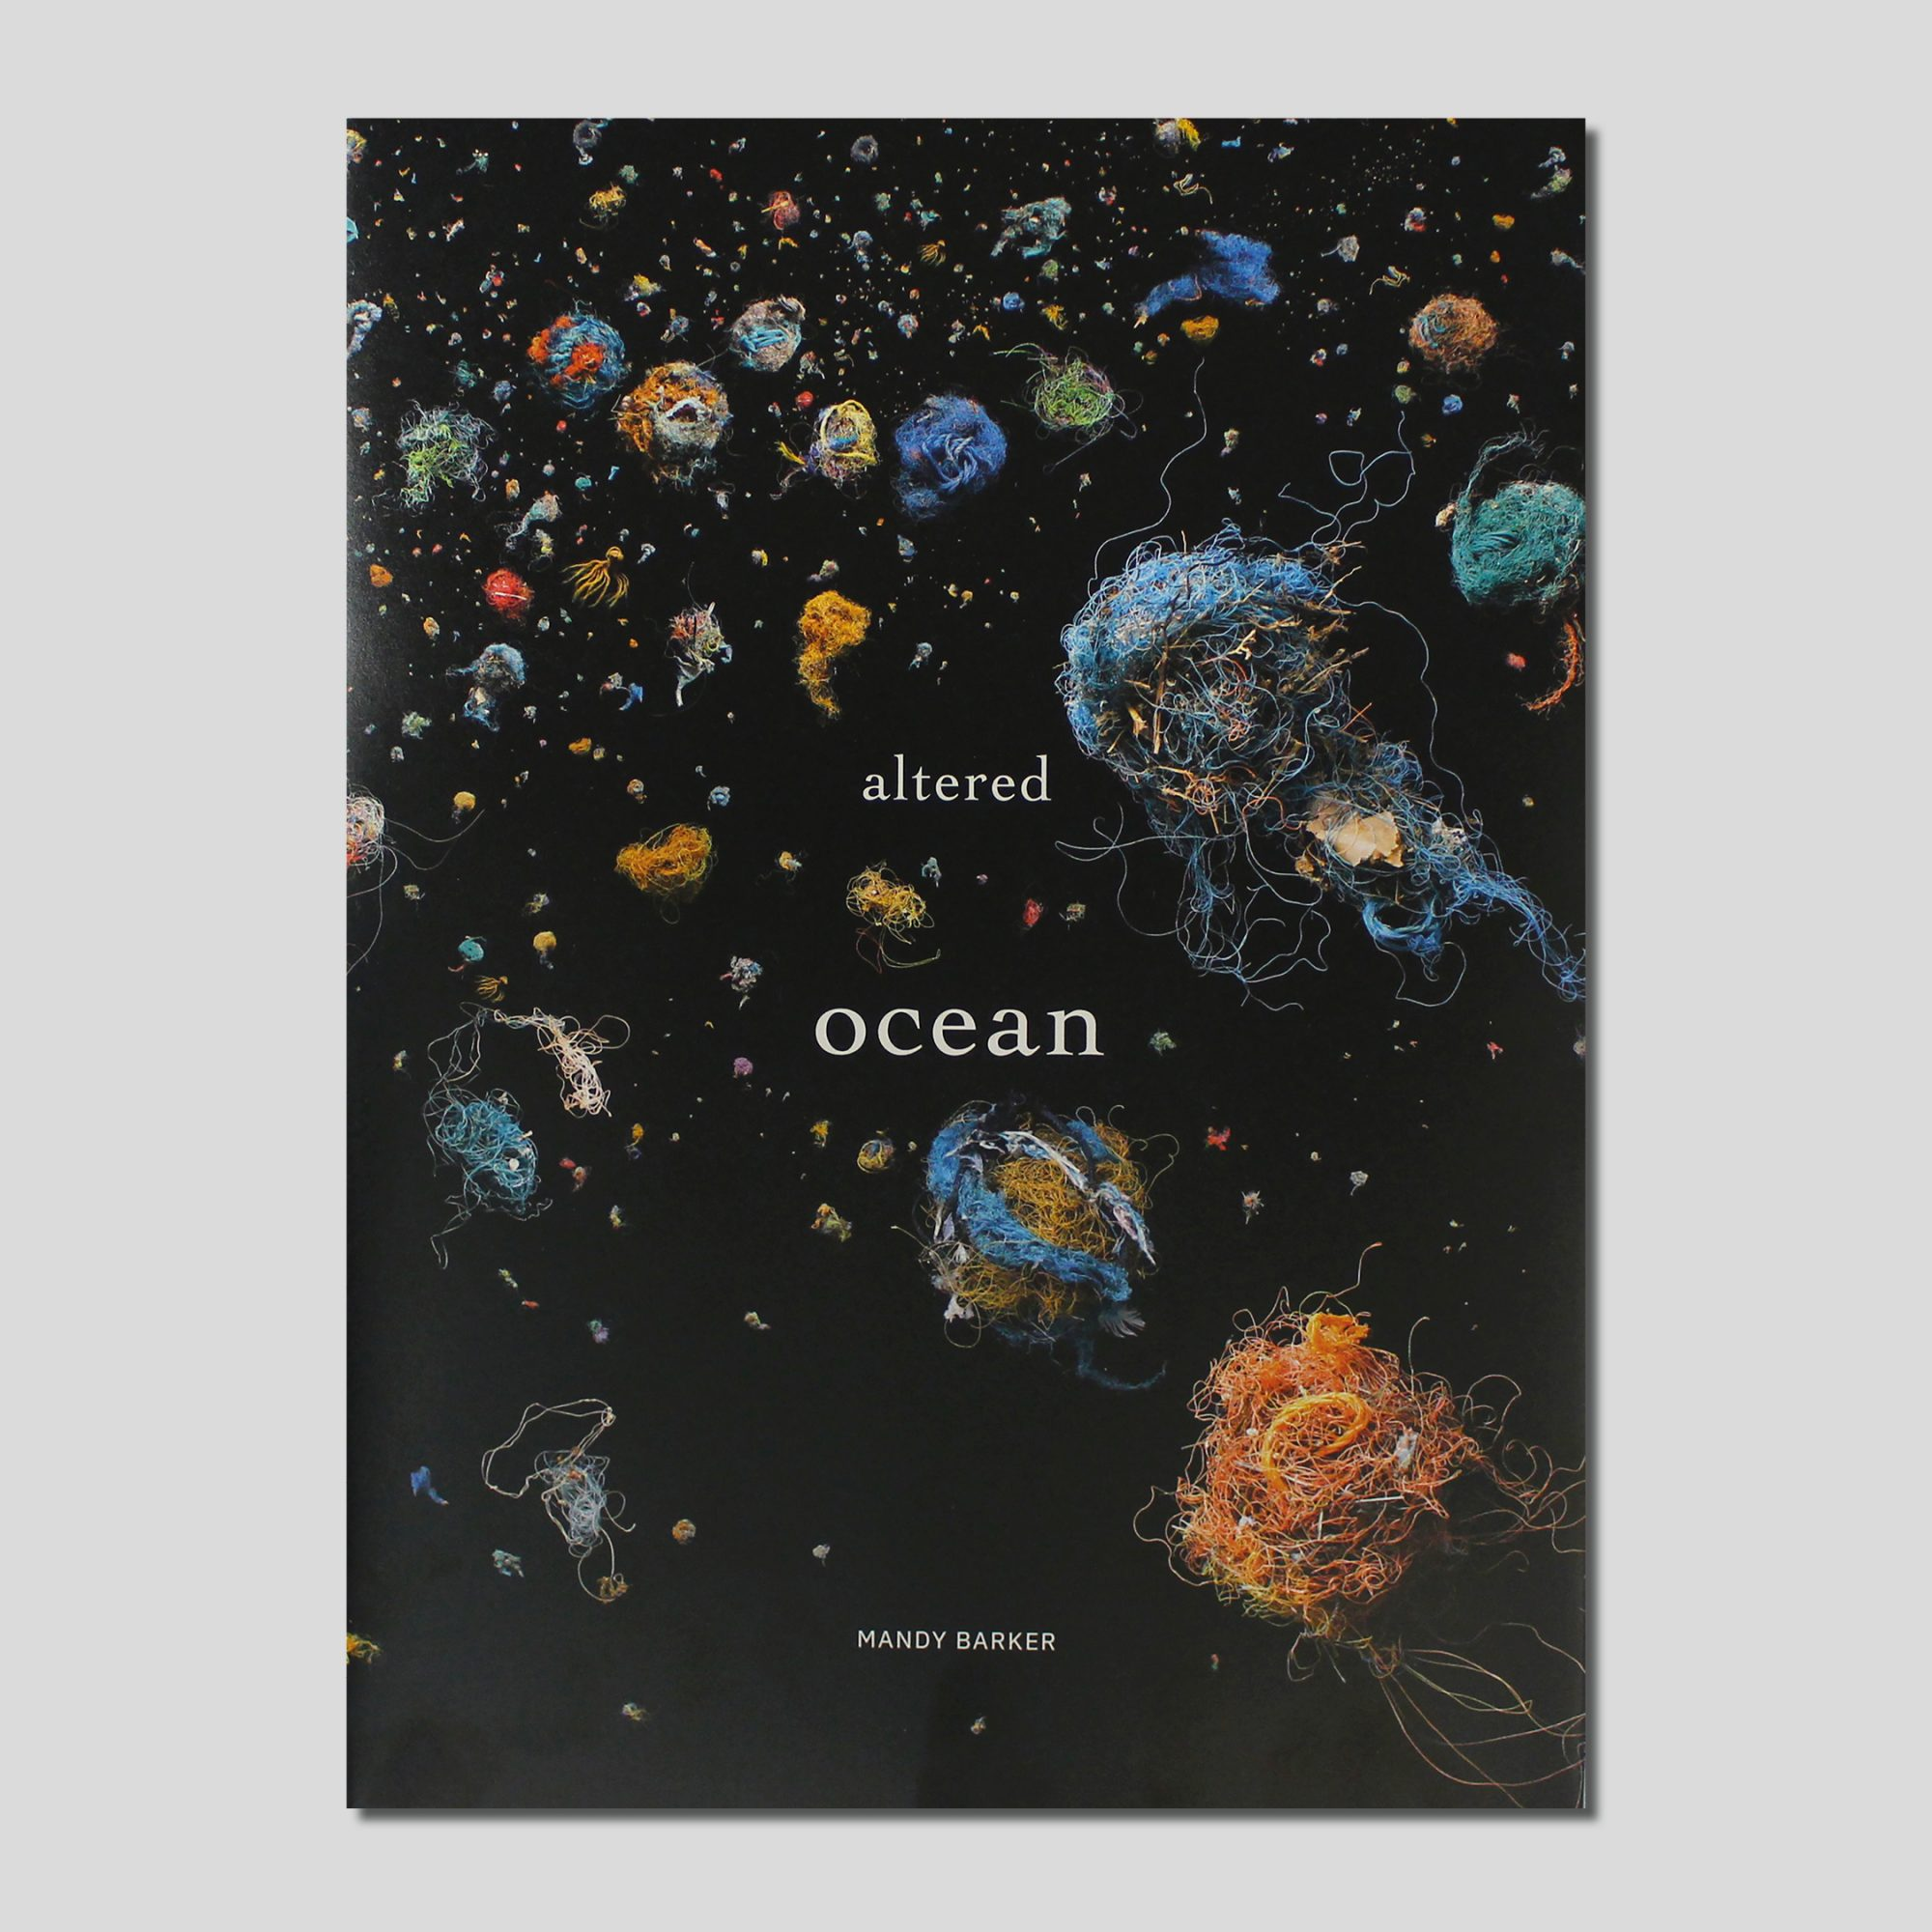 Altered Ocean book